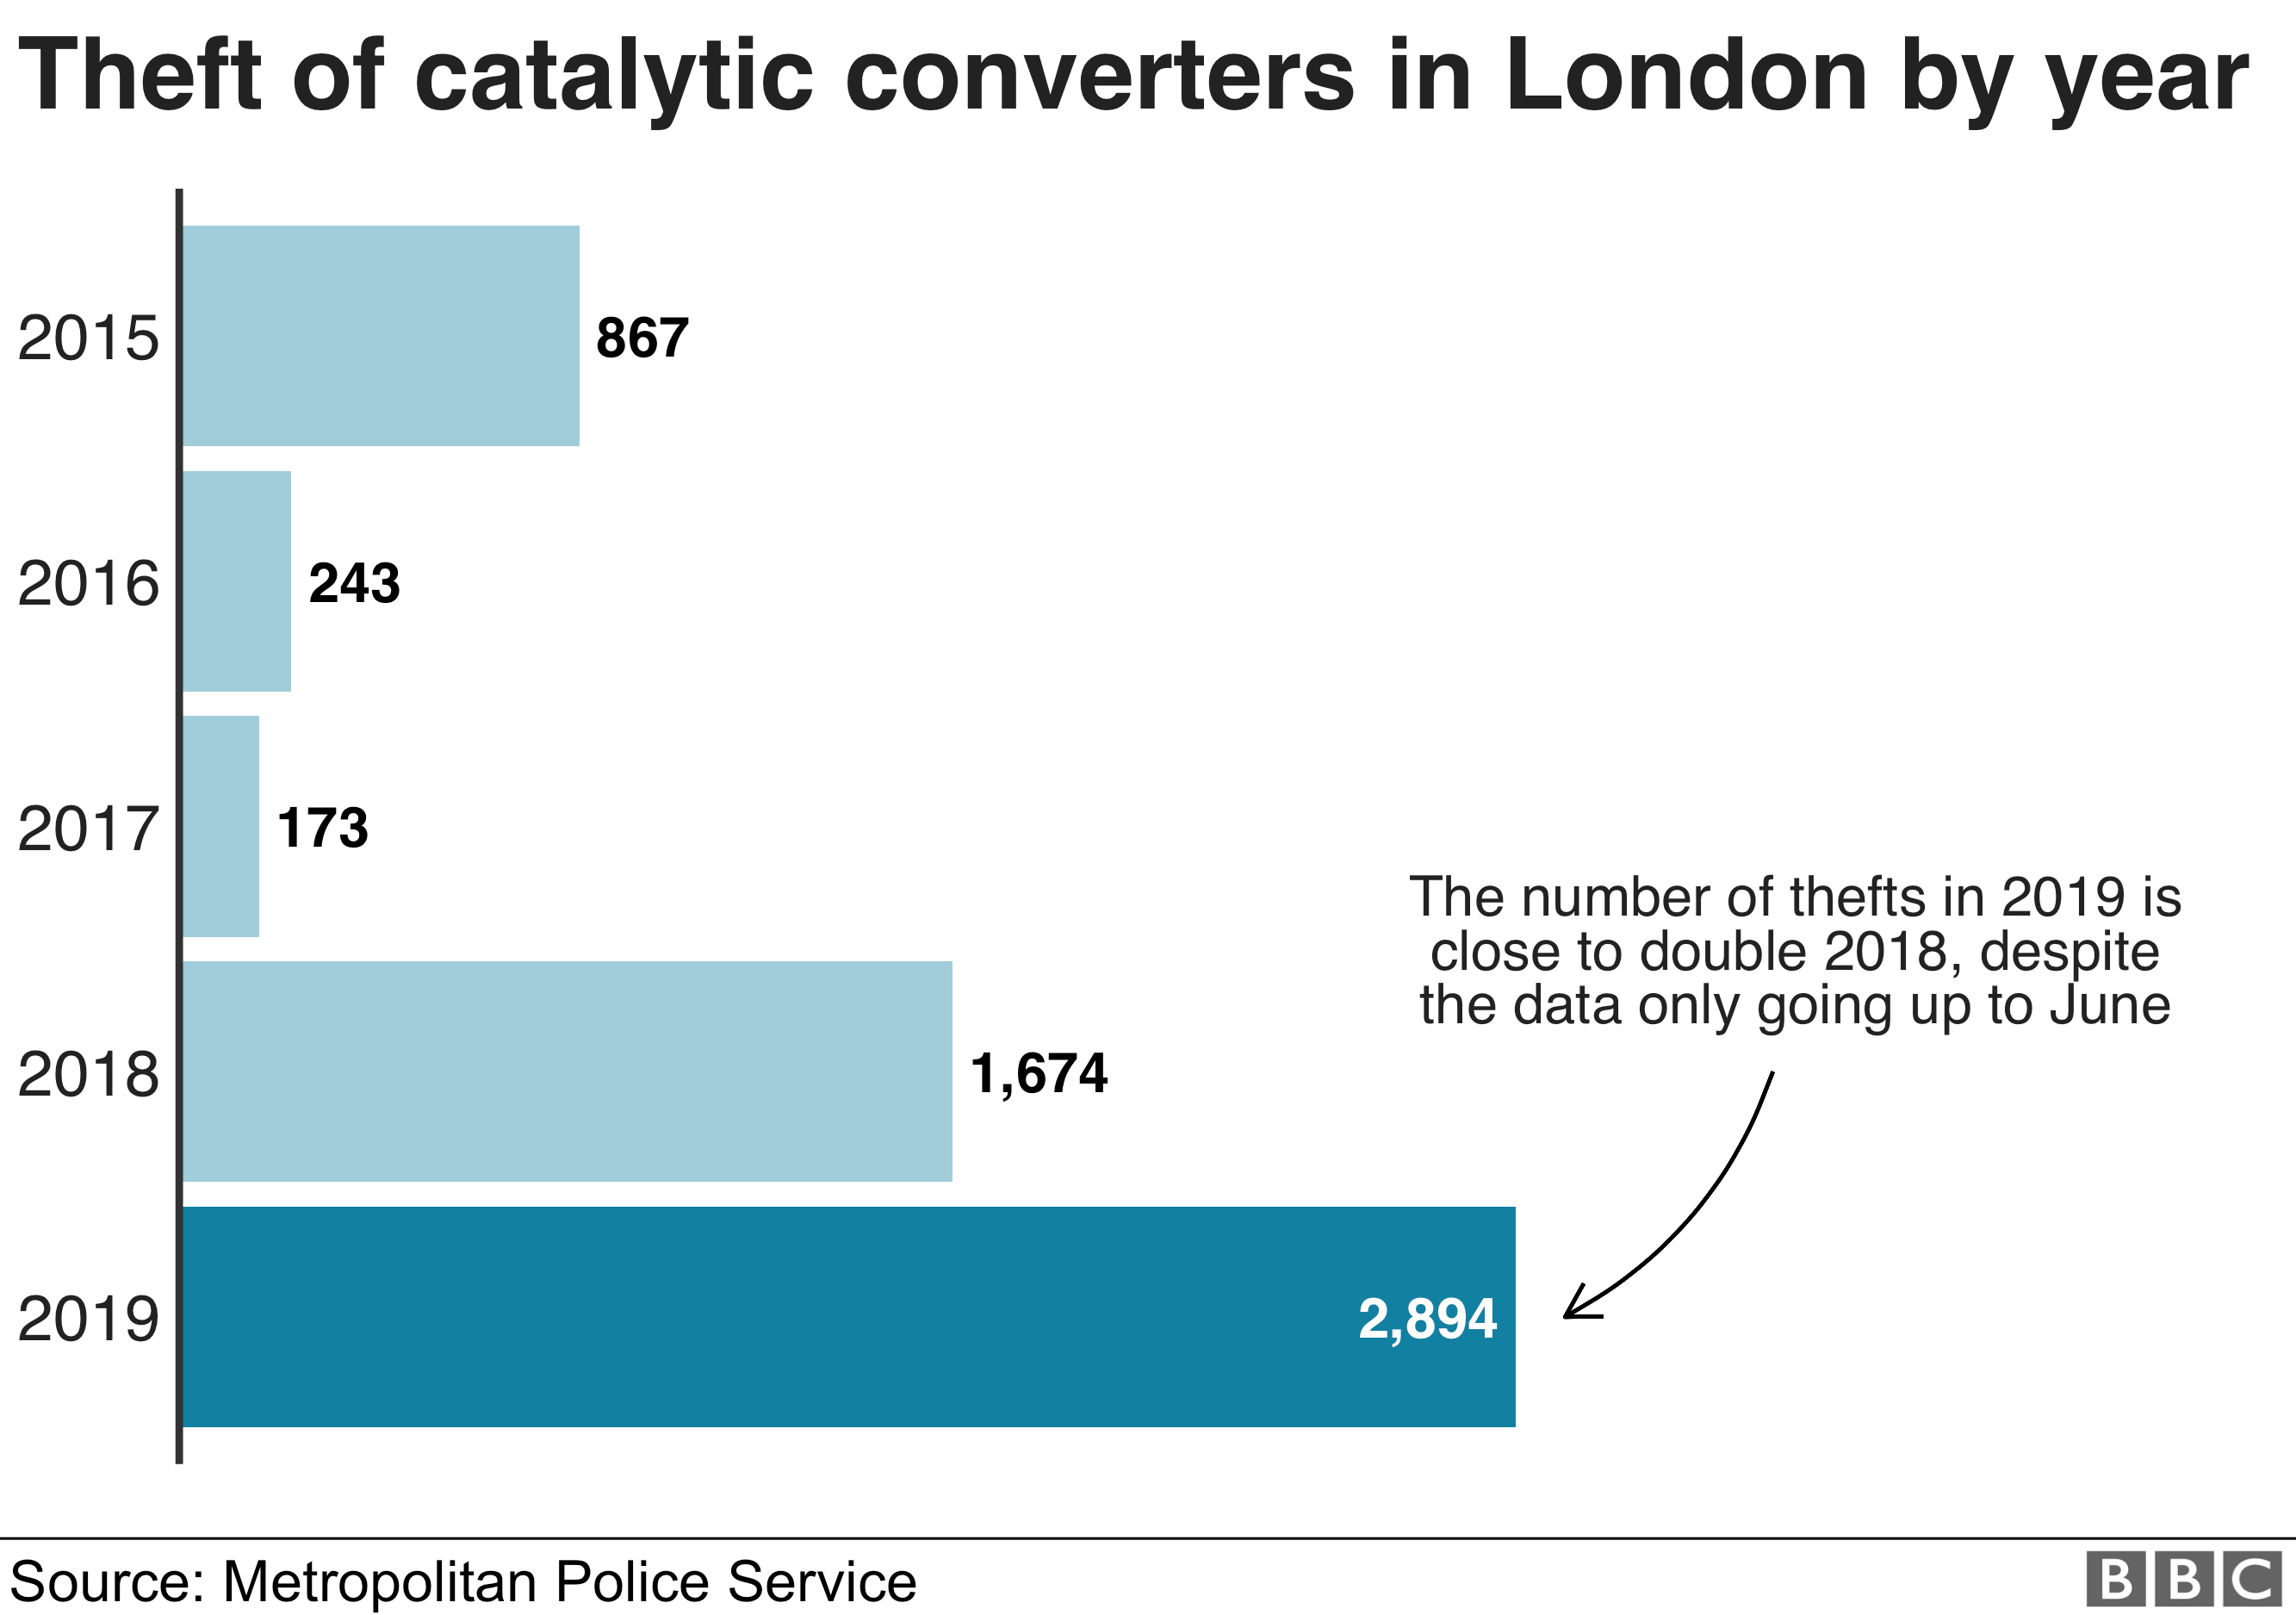 A BBC chart showing how theft of catalytic converters has risen sharply in 2019